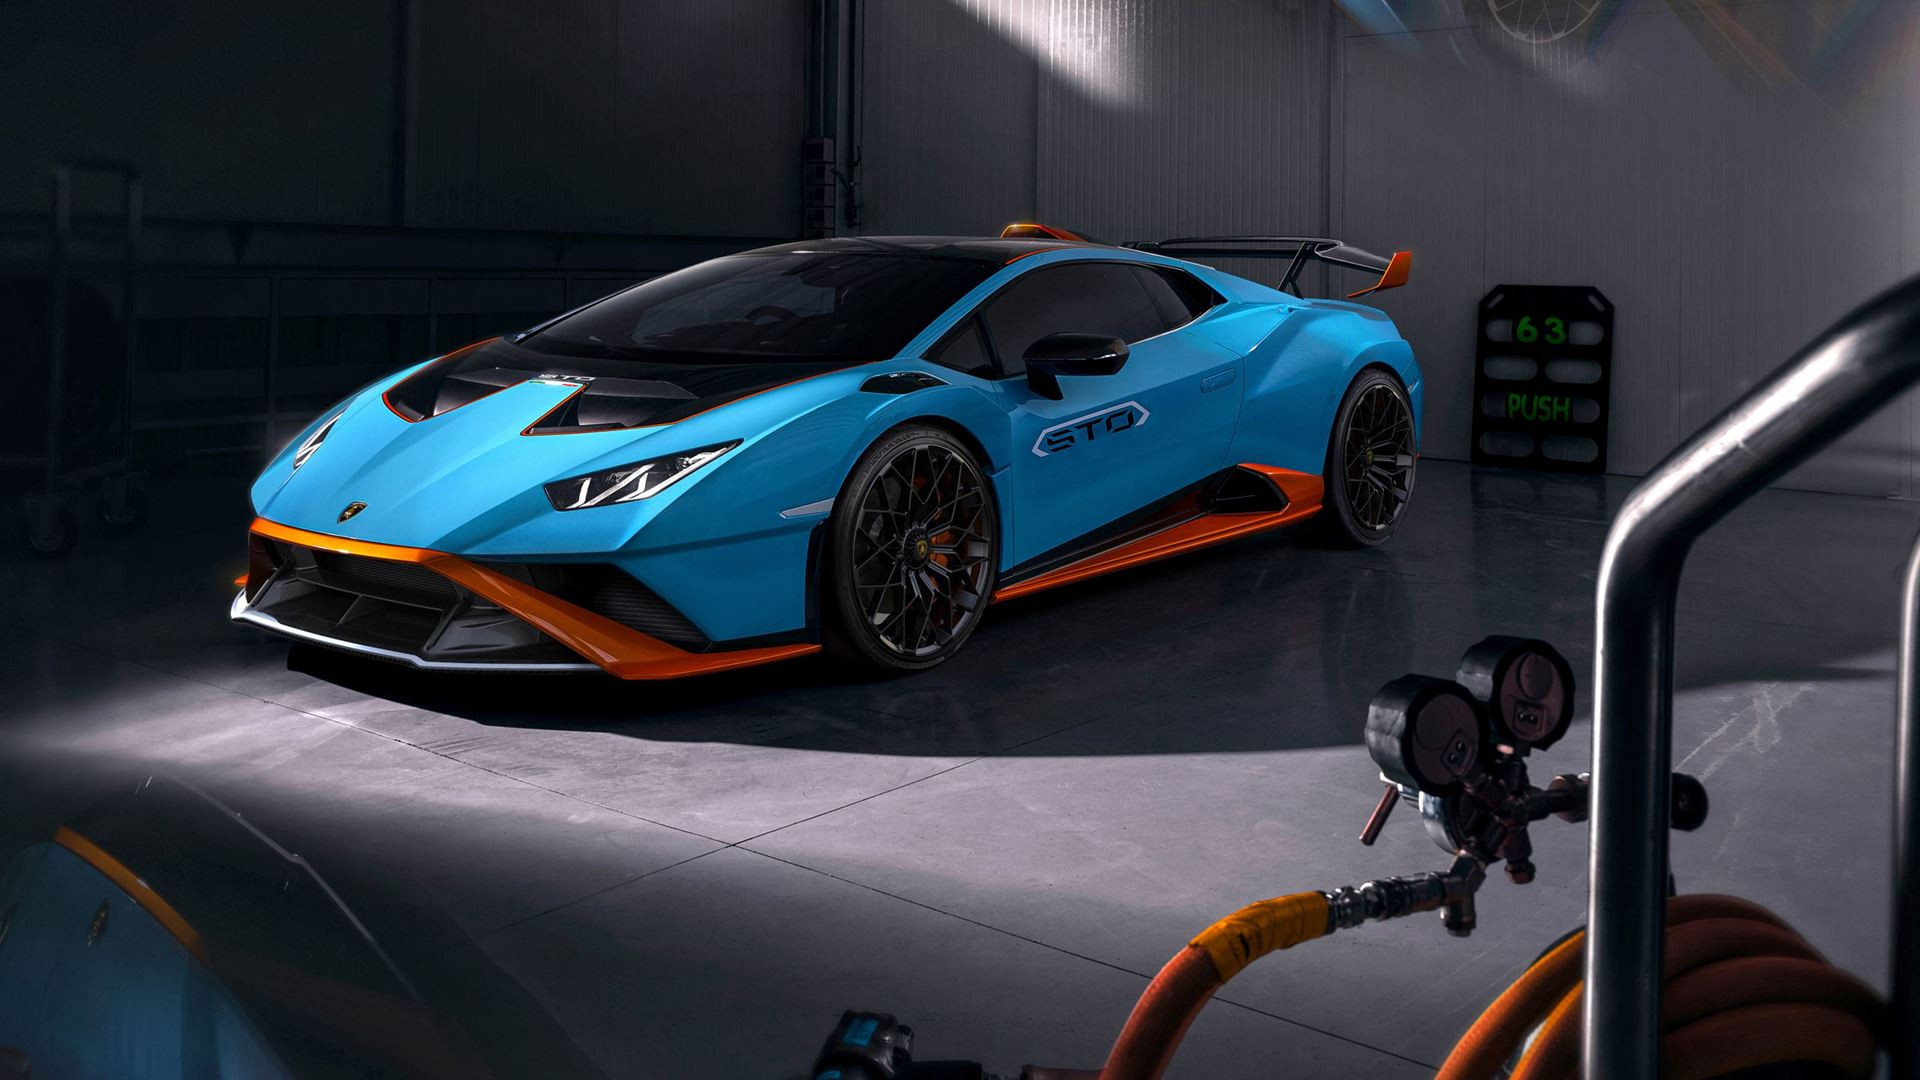 Racetrack to road: the new Lamborghini Huracán STO - Image 2